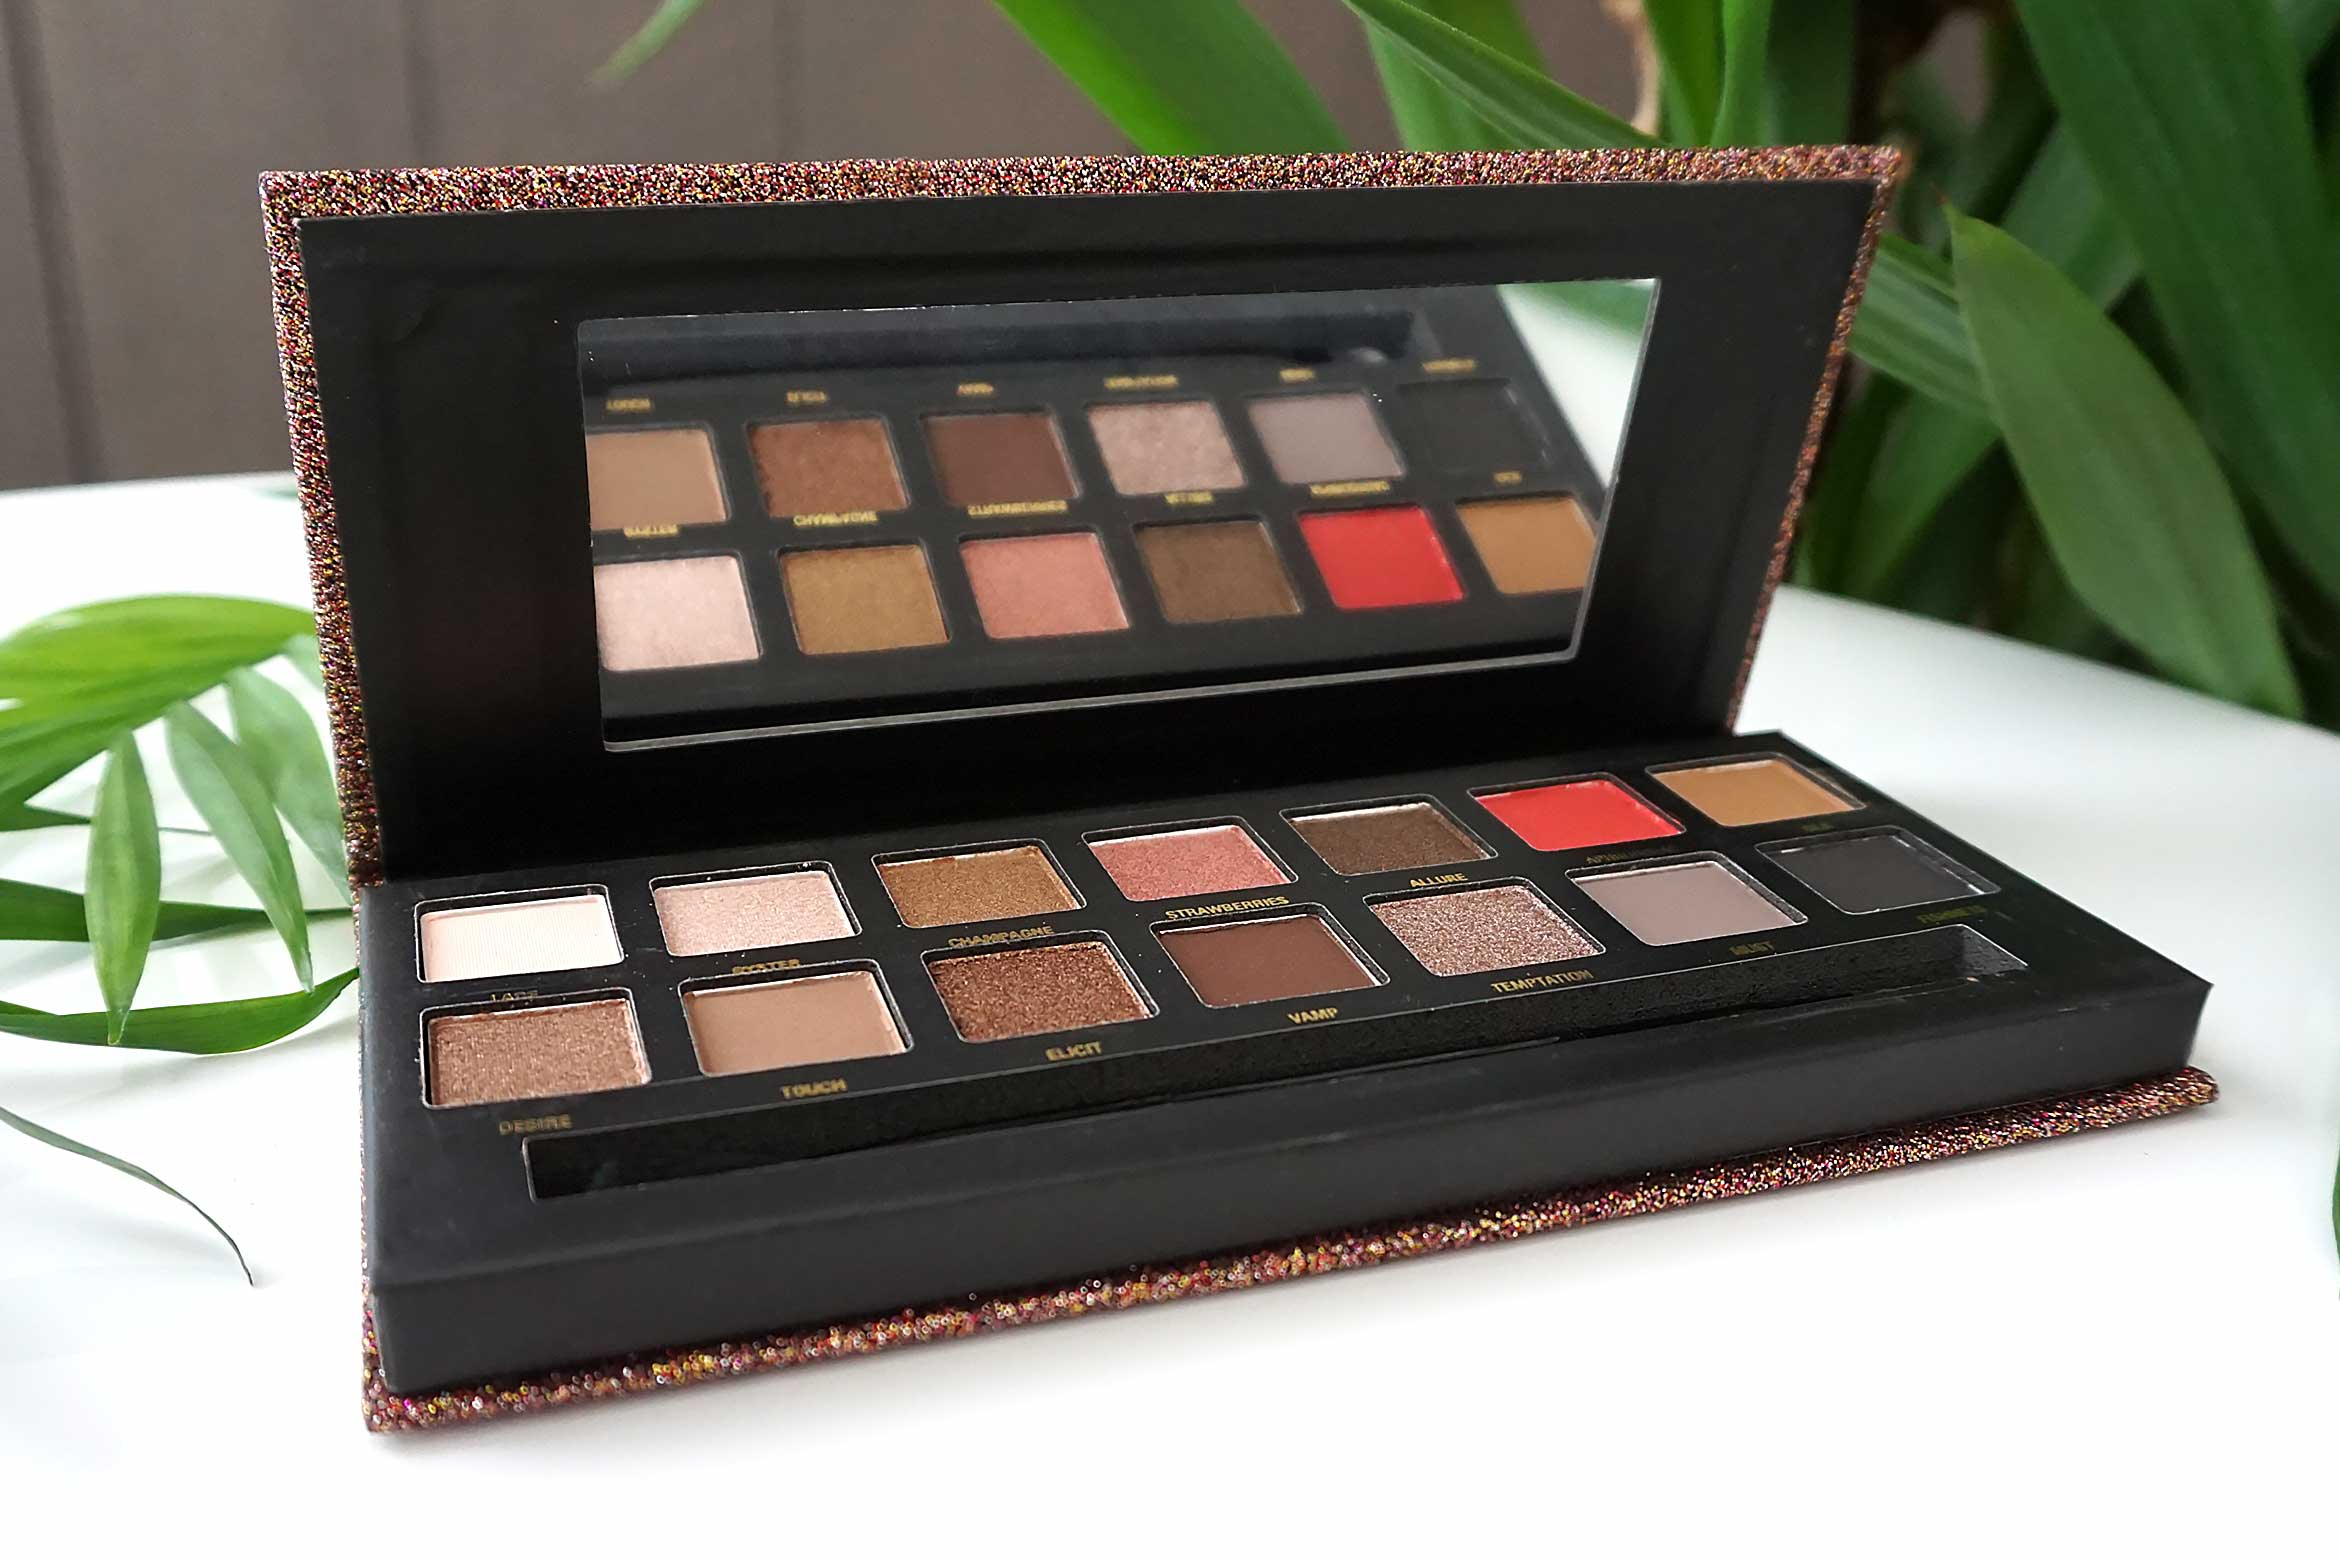 w7 seduced eyeshadow palette review-2